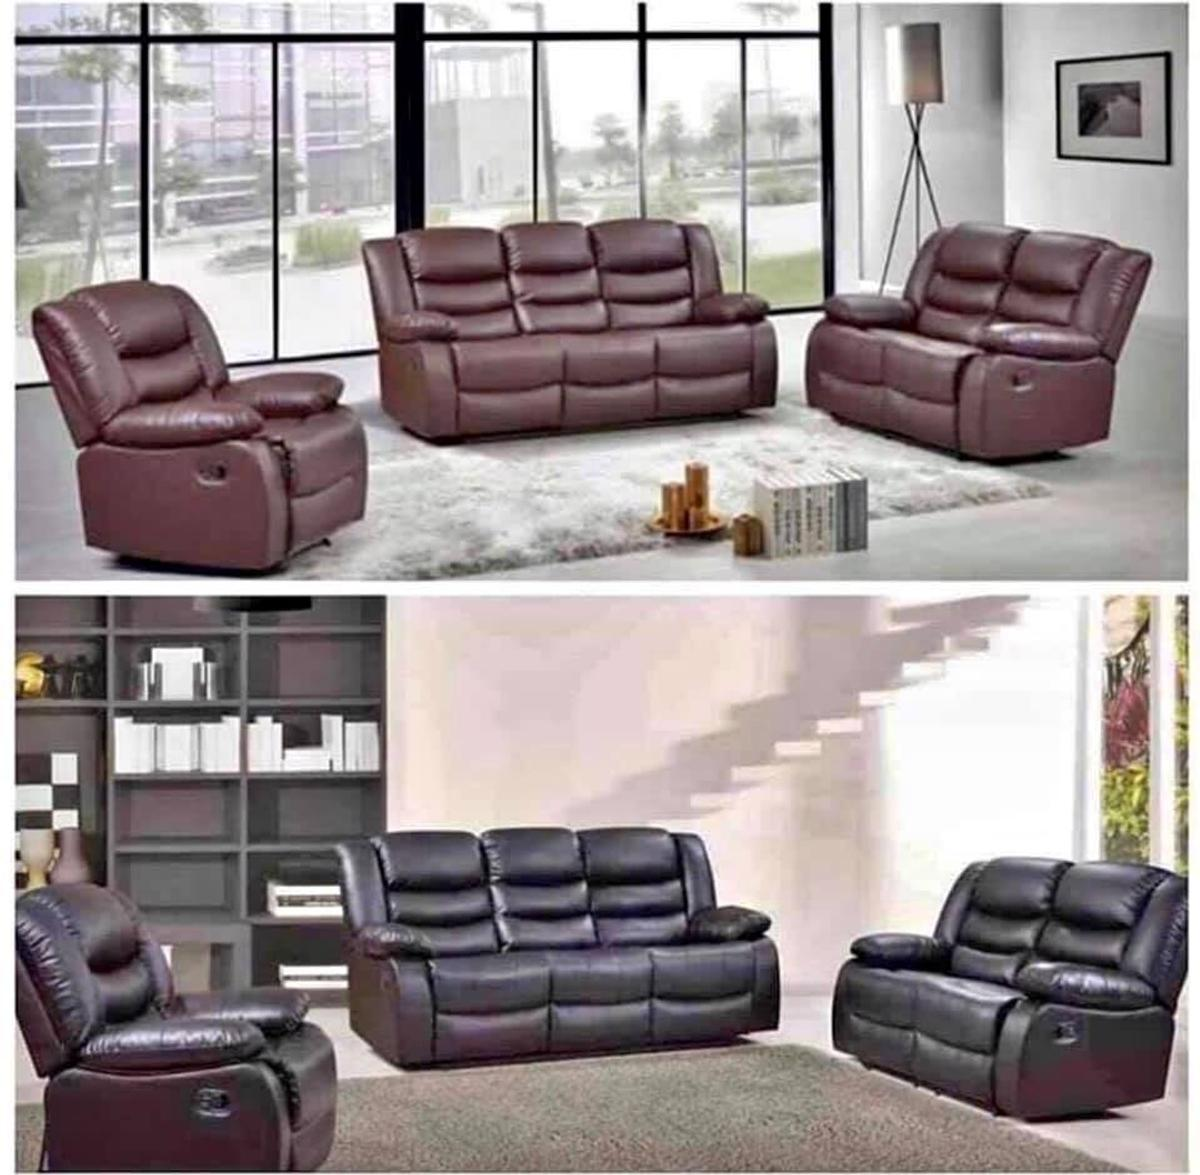 Fine 2019 Biggest Clearance Sale Recliner Sofa In Ss16 Bralicious Painted Fabric Chair Ideas Braliciousco